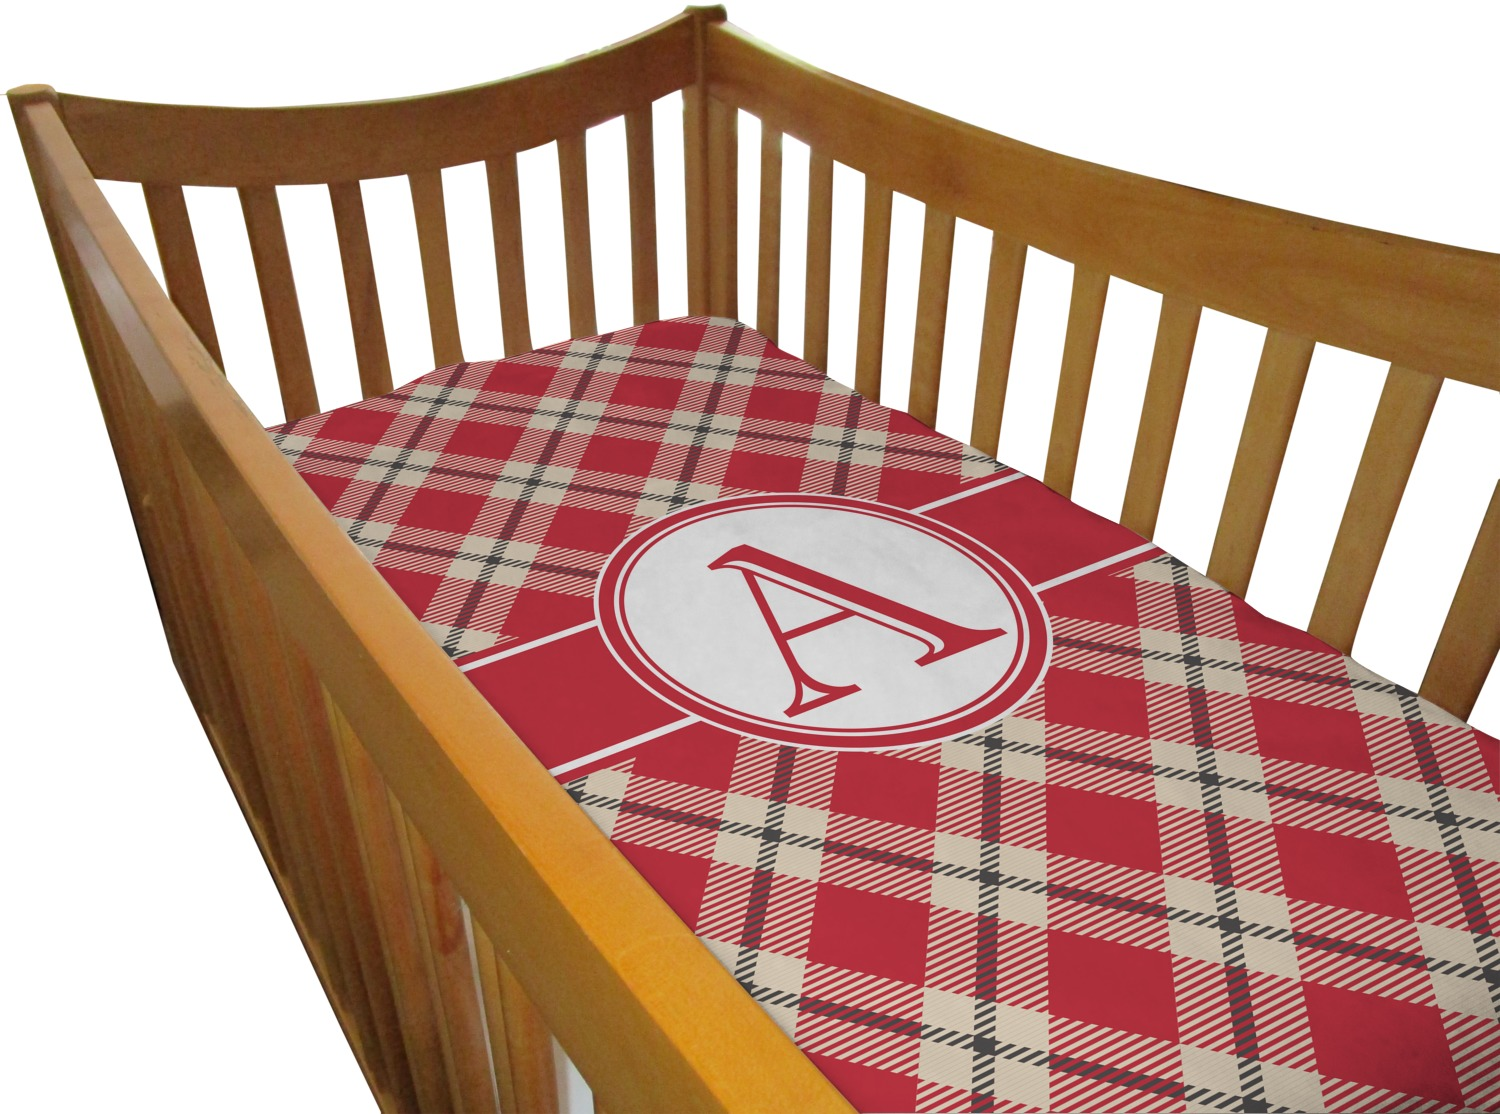 Plaid Baby Quilt: Red & Tan Plaid Crib Comforter / Quilt (Personalized